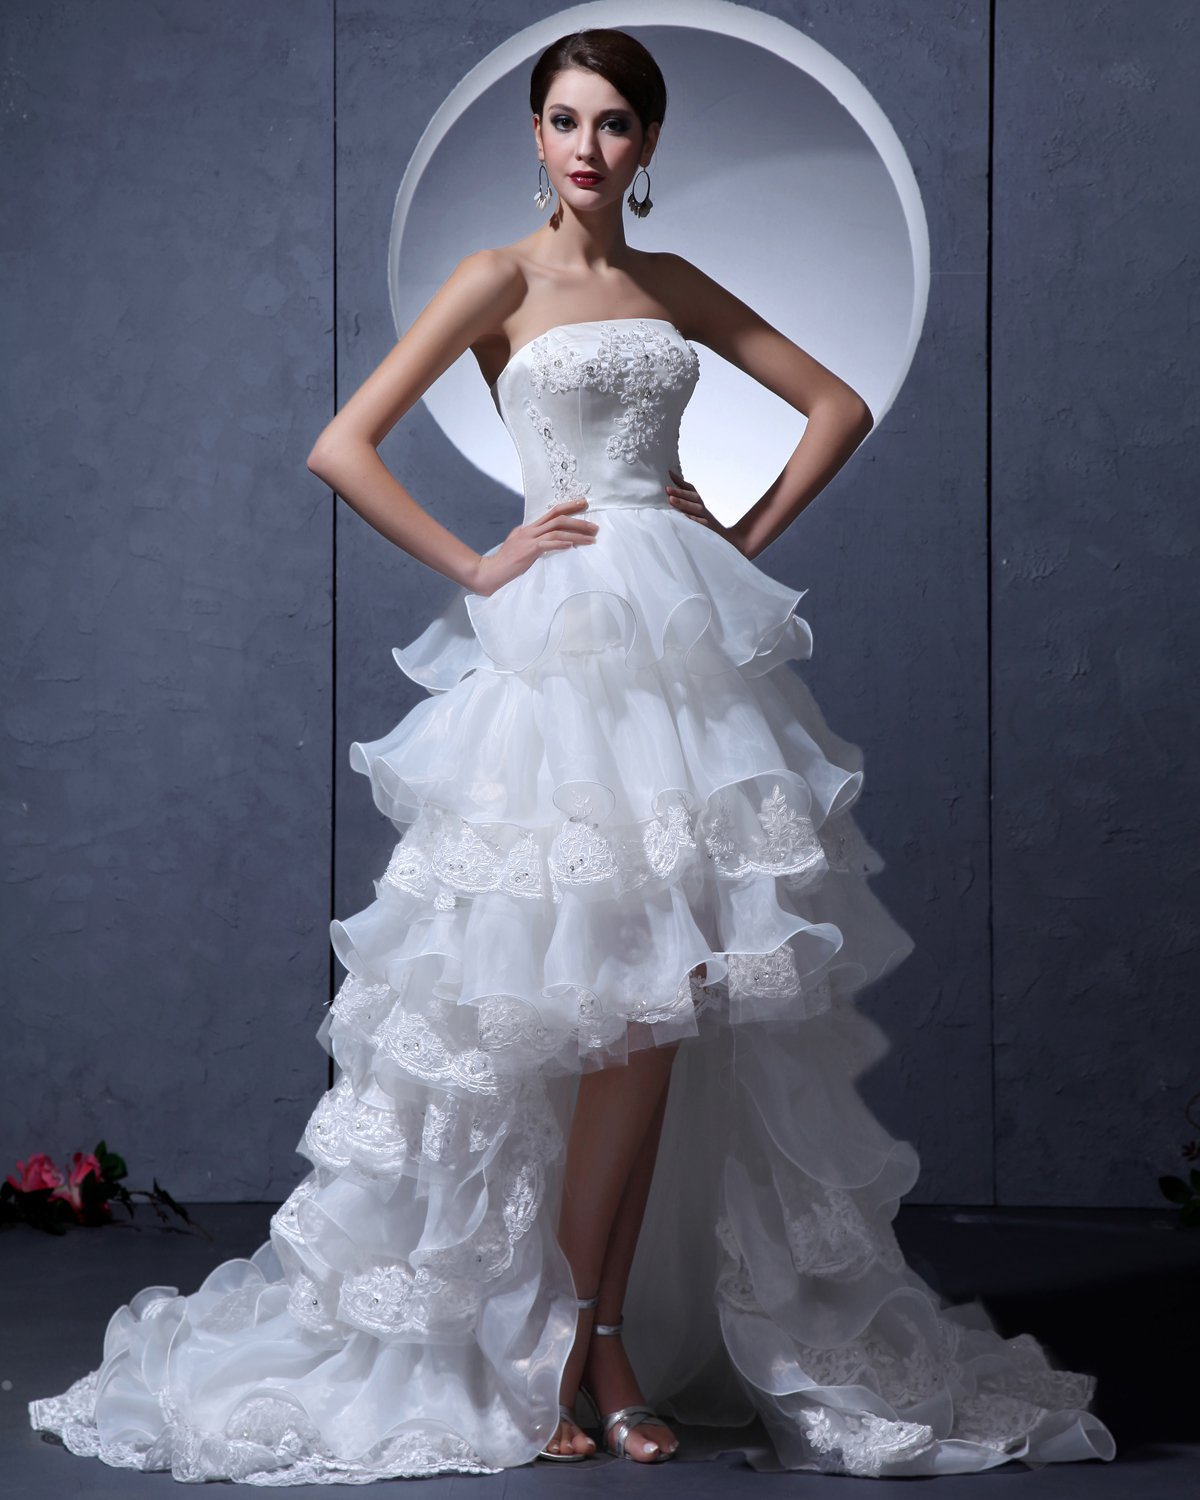 Yarn Asymmetric Strapless Ruffle Short Bridal Gown Wedding Dresses